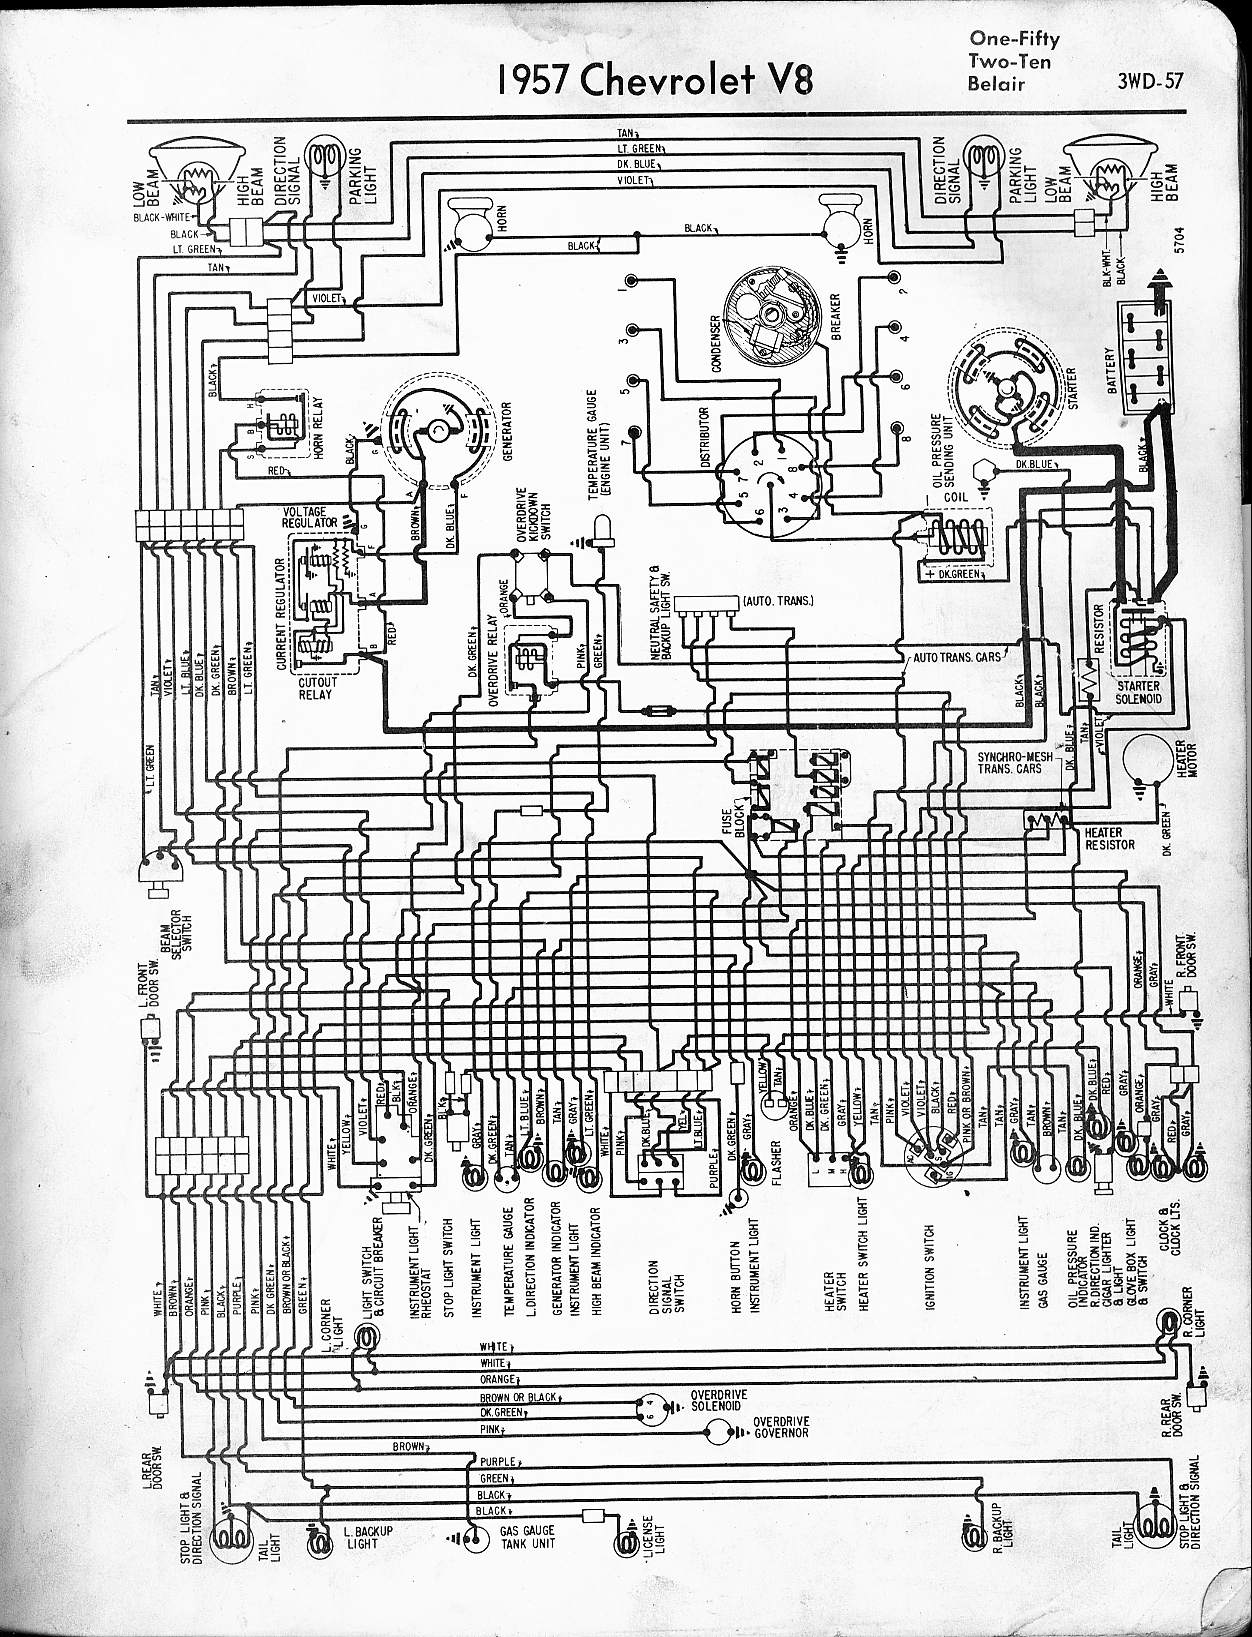 57 65 chevy wiring diagrams rh oldcarmanualproject com 01 Mustang Wiring Diagram 95 Mustang Wiring Diagram